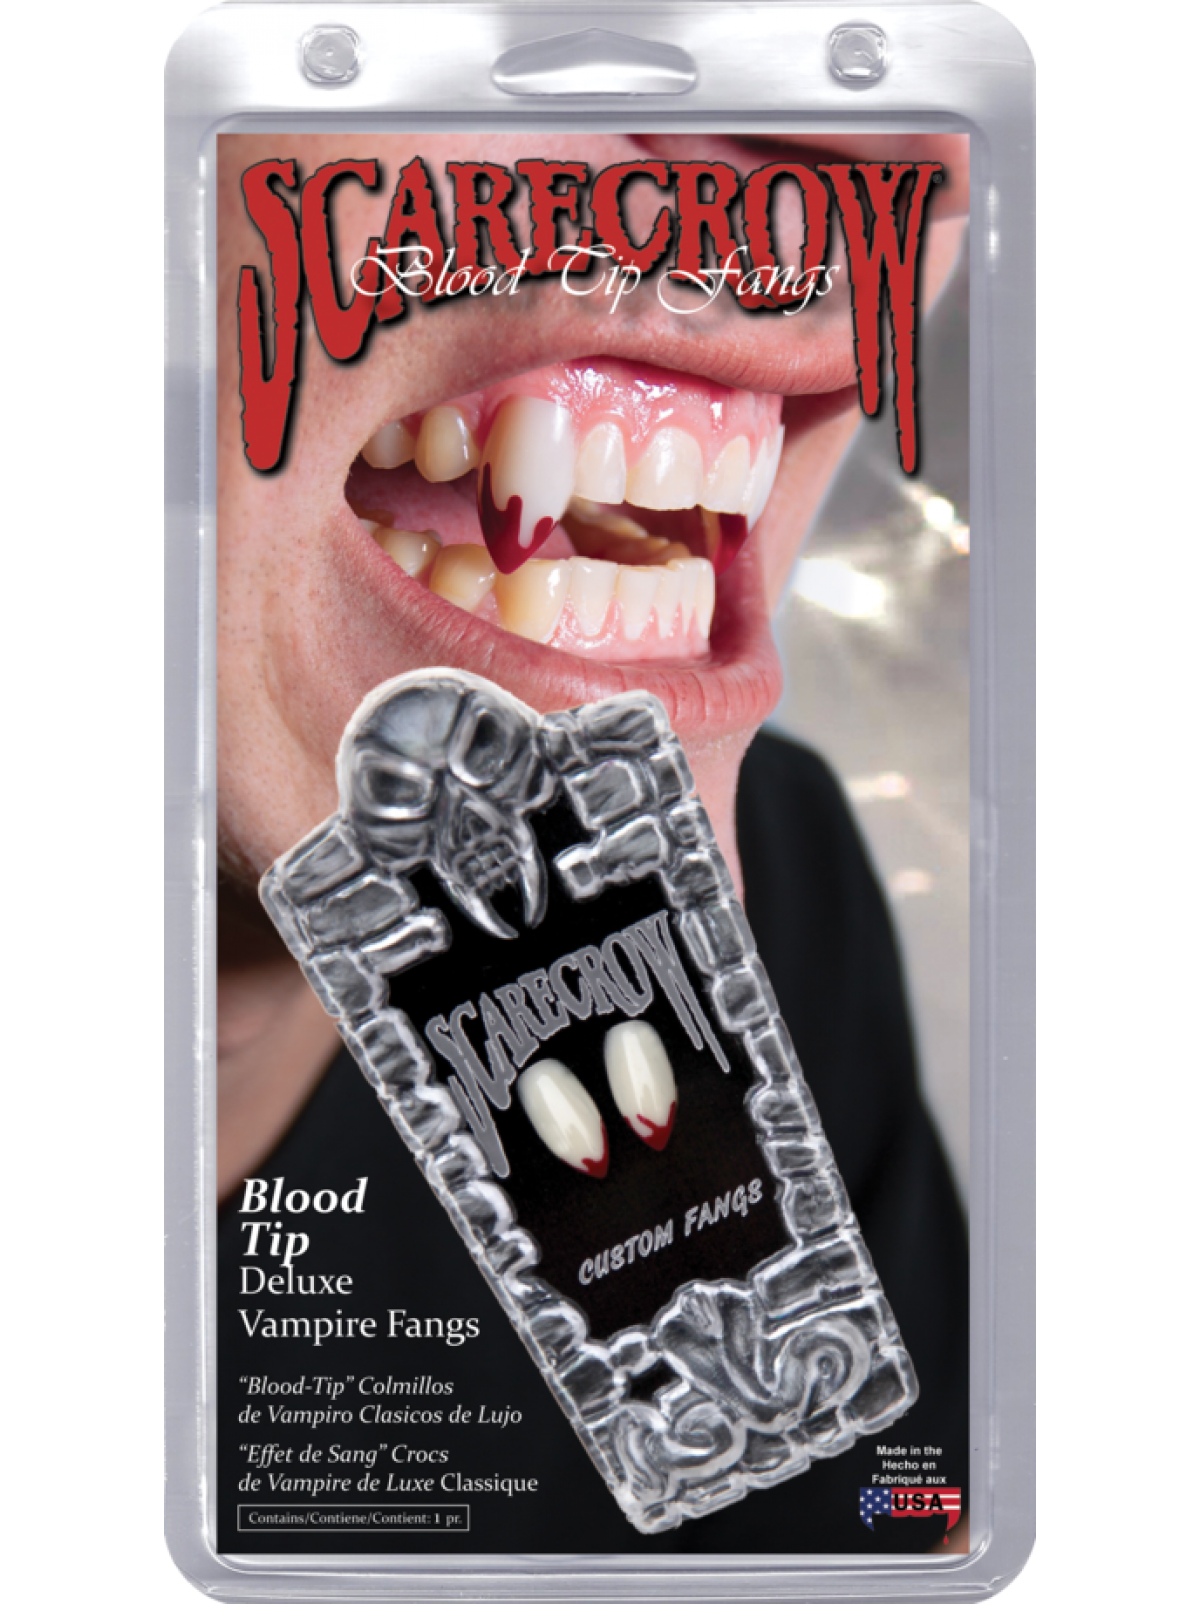 Blood and fangs png. Scarecrow vampire tip classic